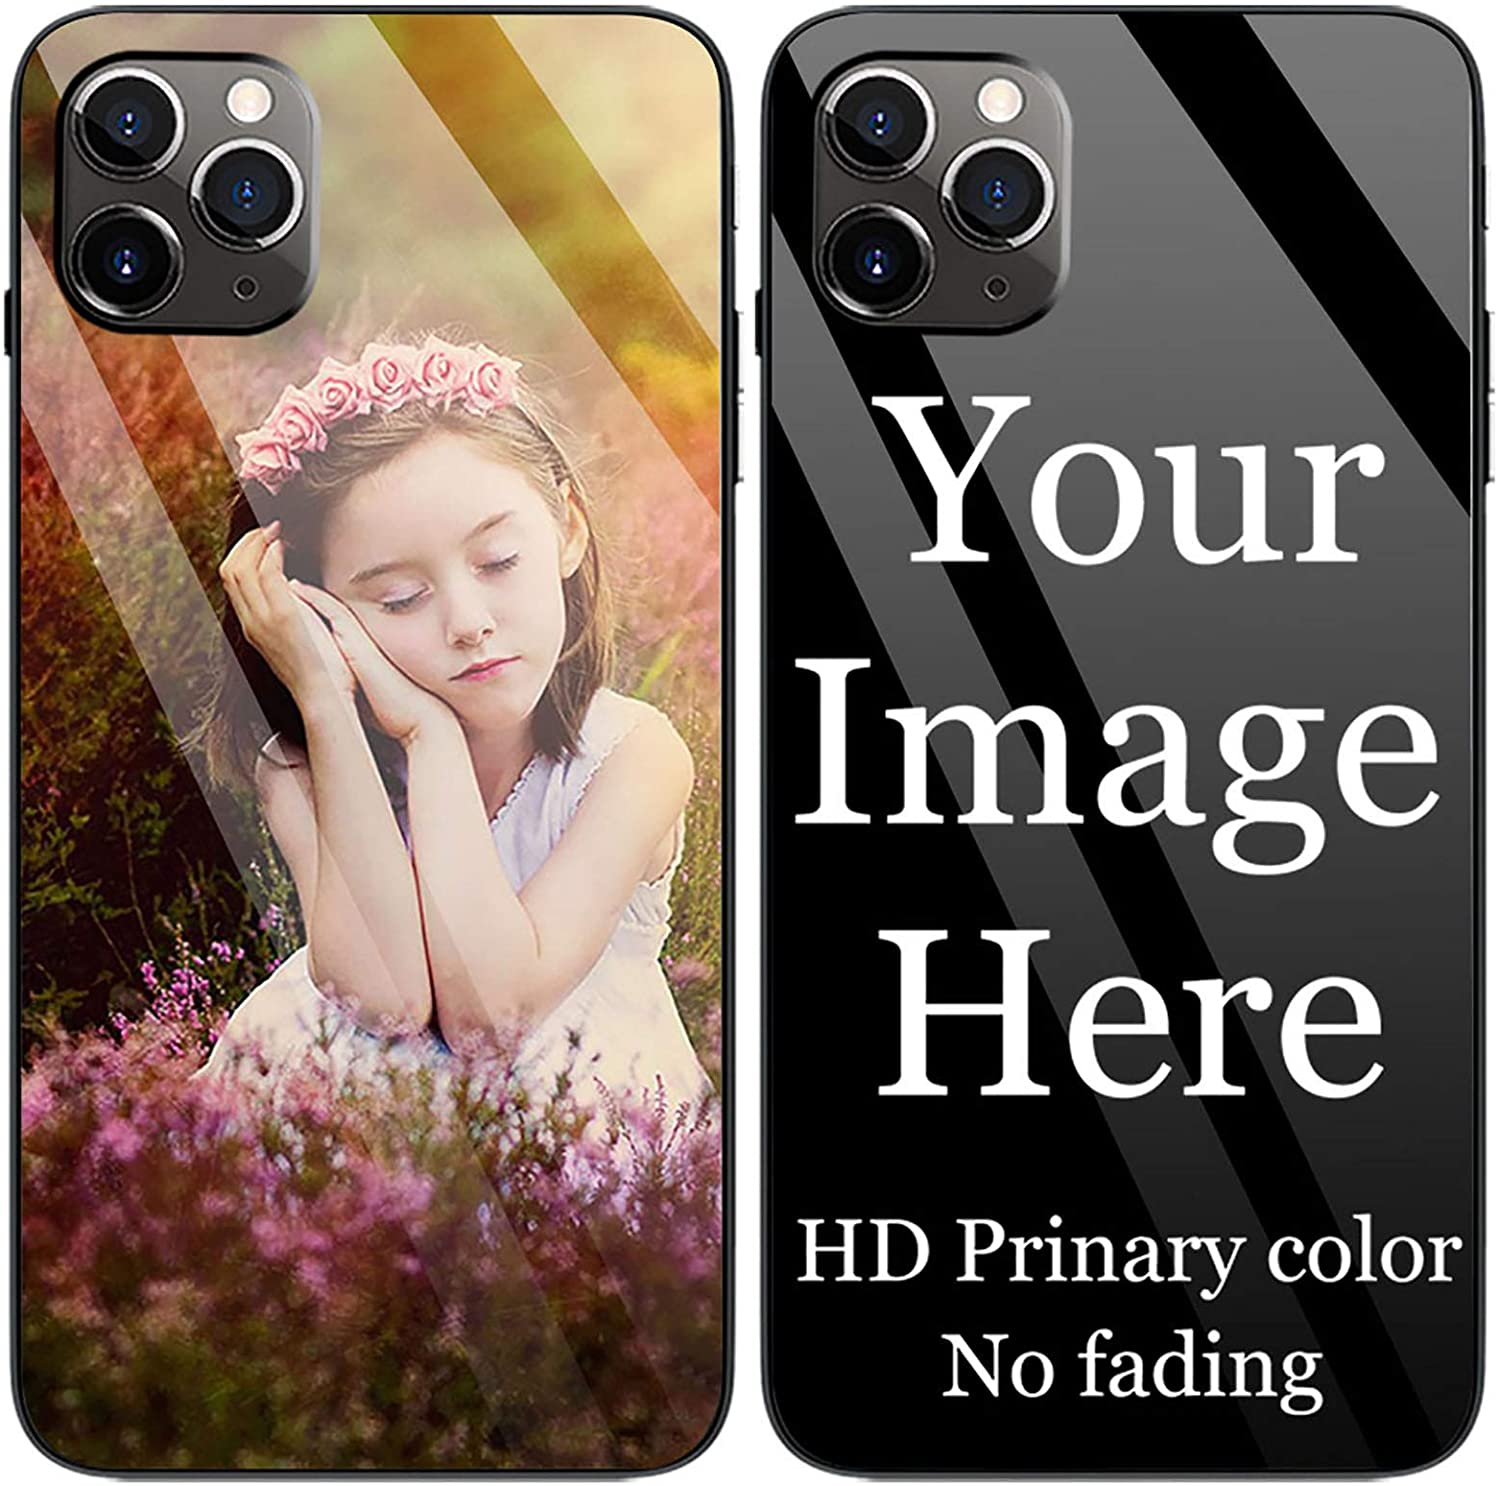 Depthlan Custom Phone Case for iPhone 11 Pro Max iPhone 6 7 8 Plus iPhone Xs Max XR Glass Cover Anti-Scratch Soft TPU Personalized Photo Make Your Own Picture Cases